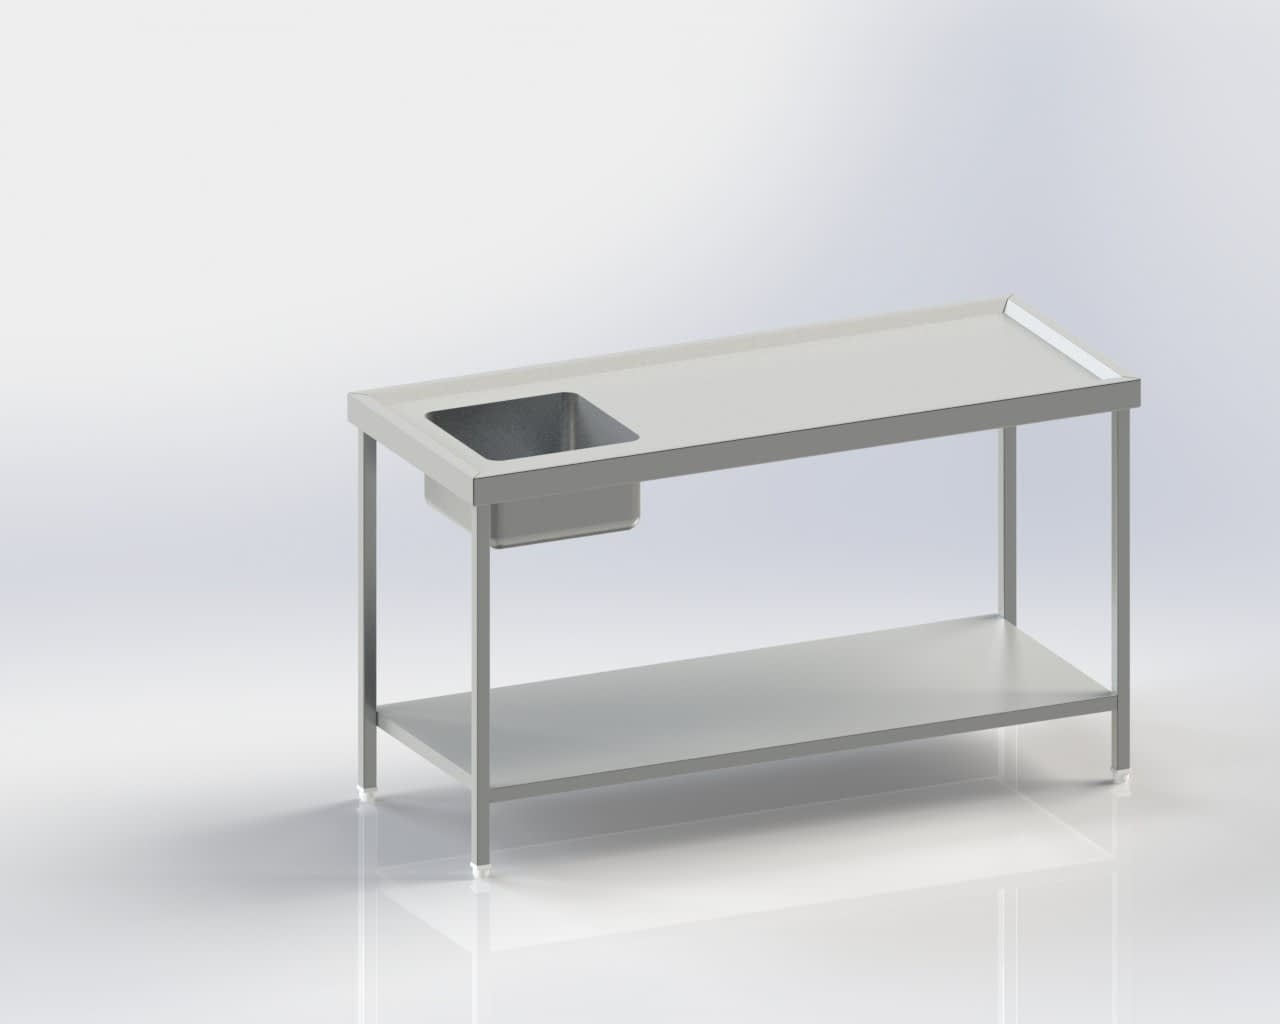 Work Table/Sink